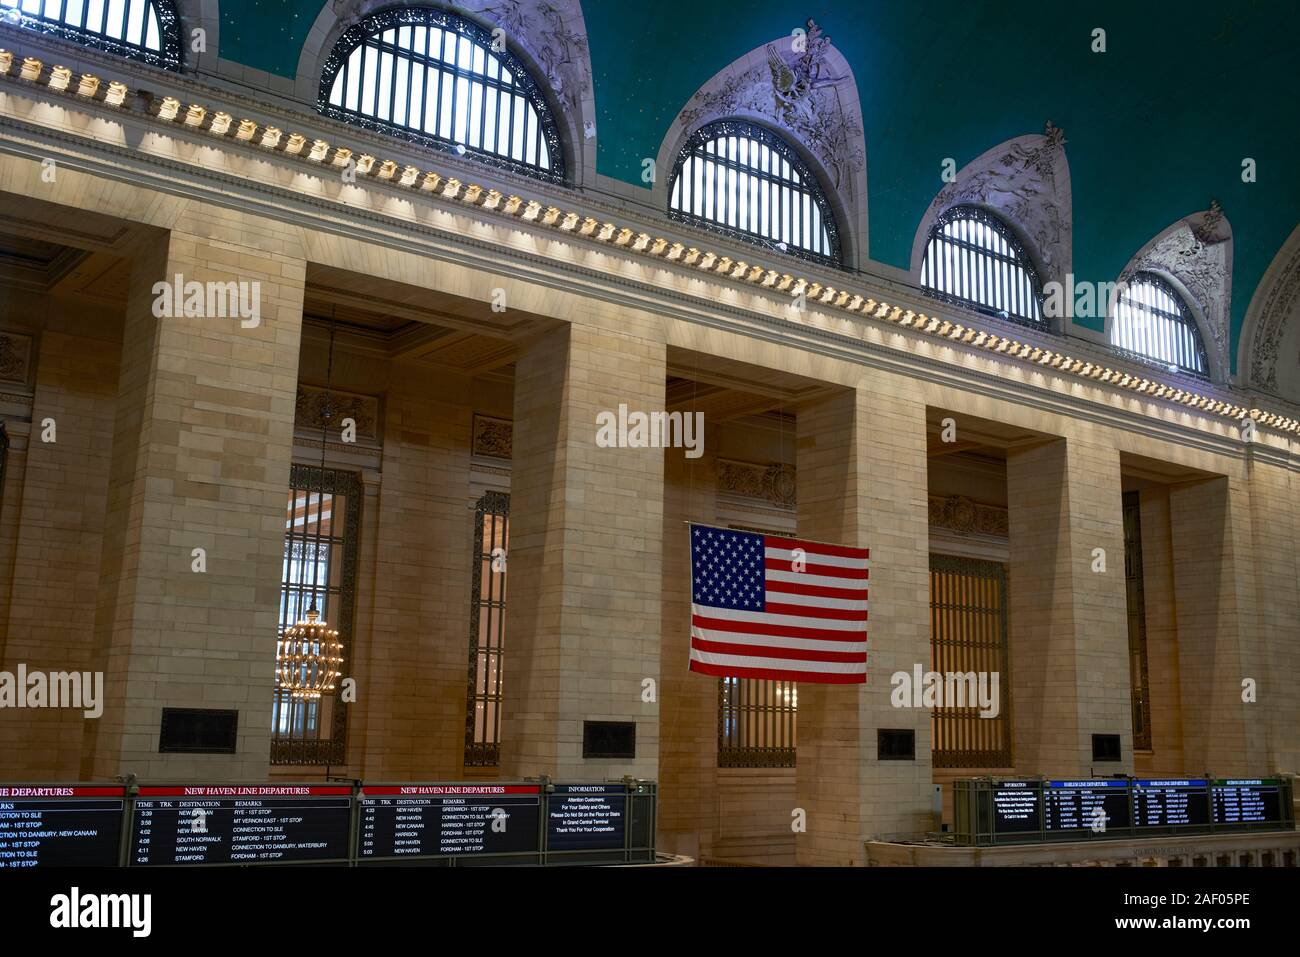 Innenraum des Grand Central Station in New York City. Stockfoto